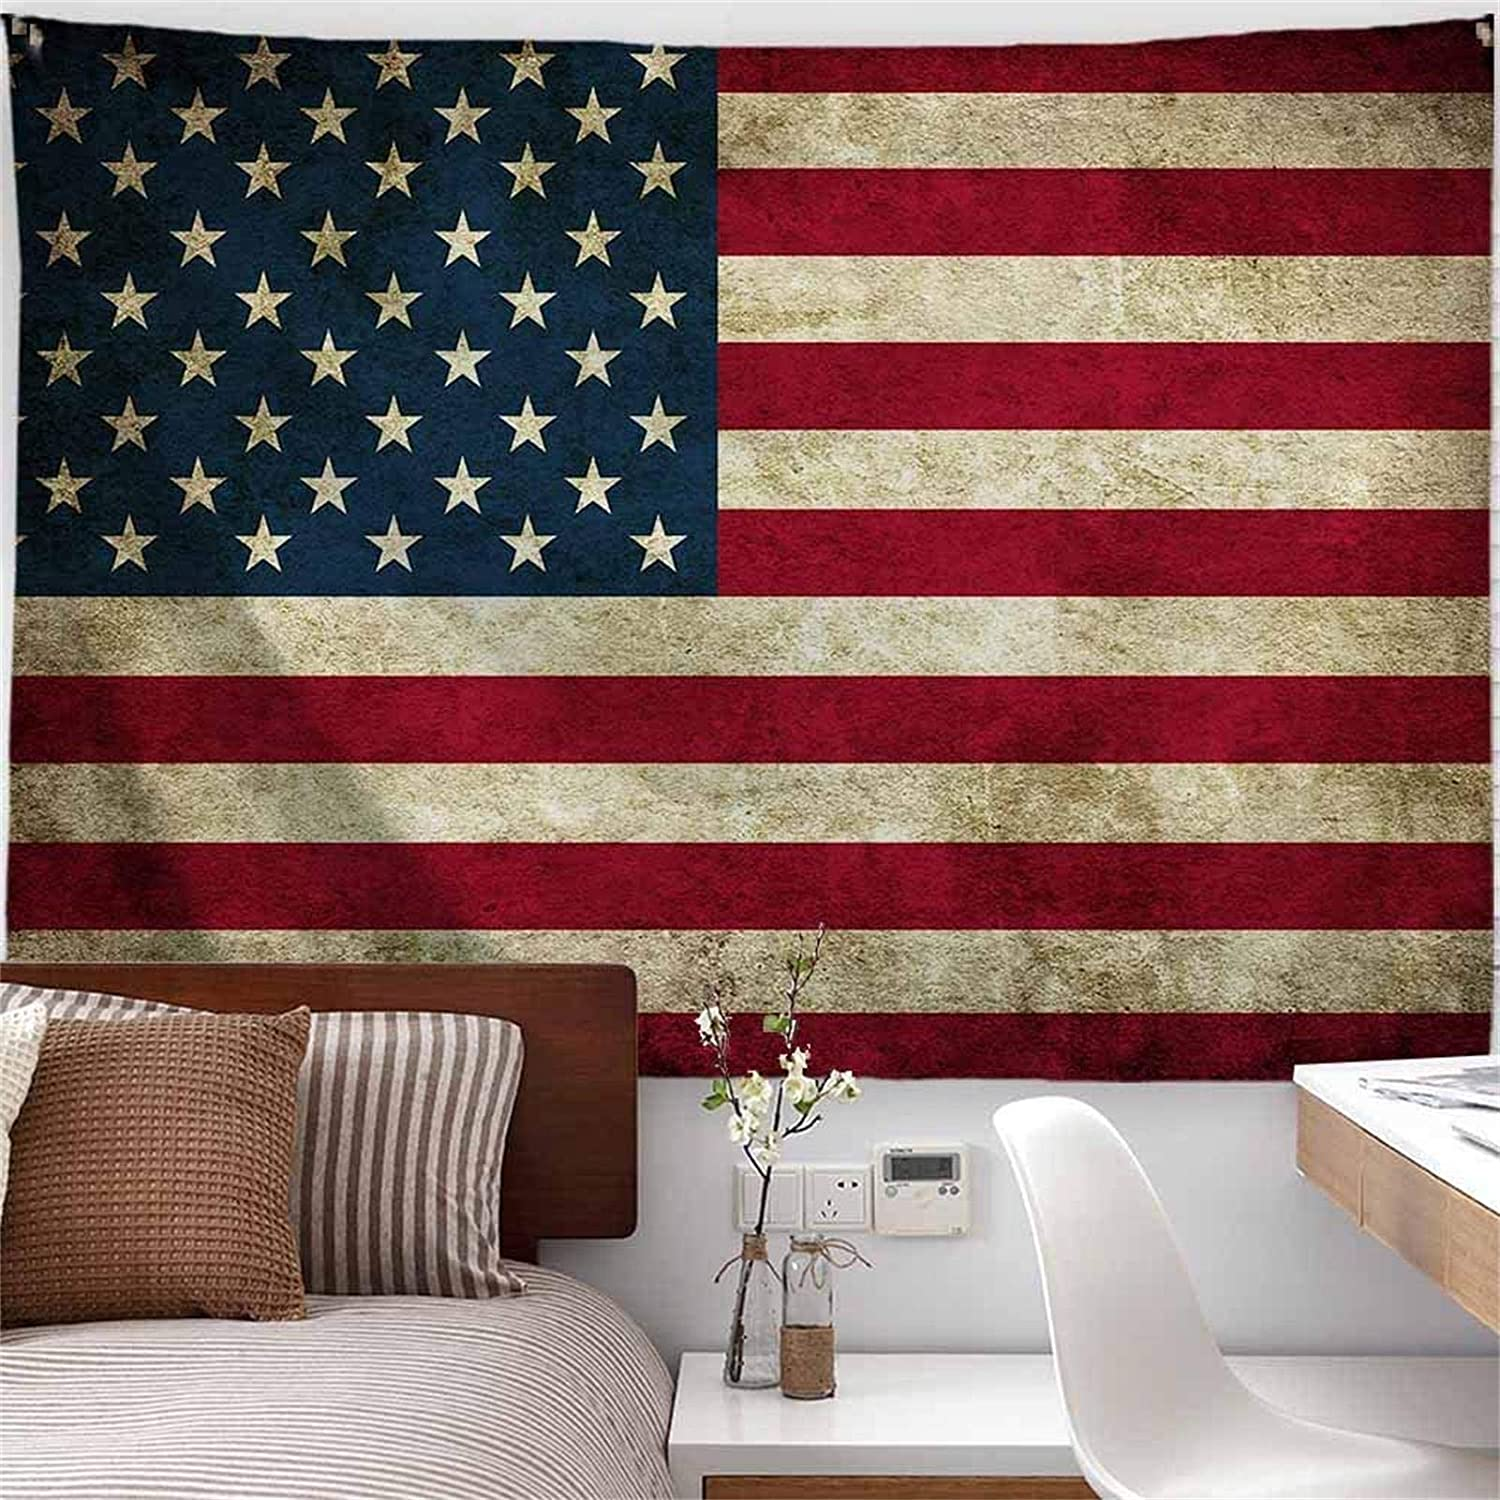 PROCIDA New arrival American Flag Tapestry Wall Retro Hanging Vintage Recommendation Stars